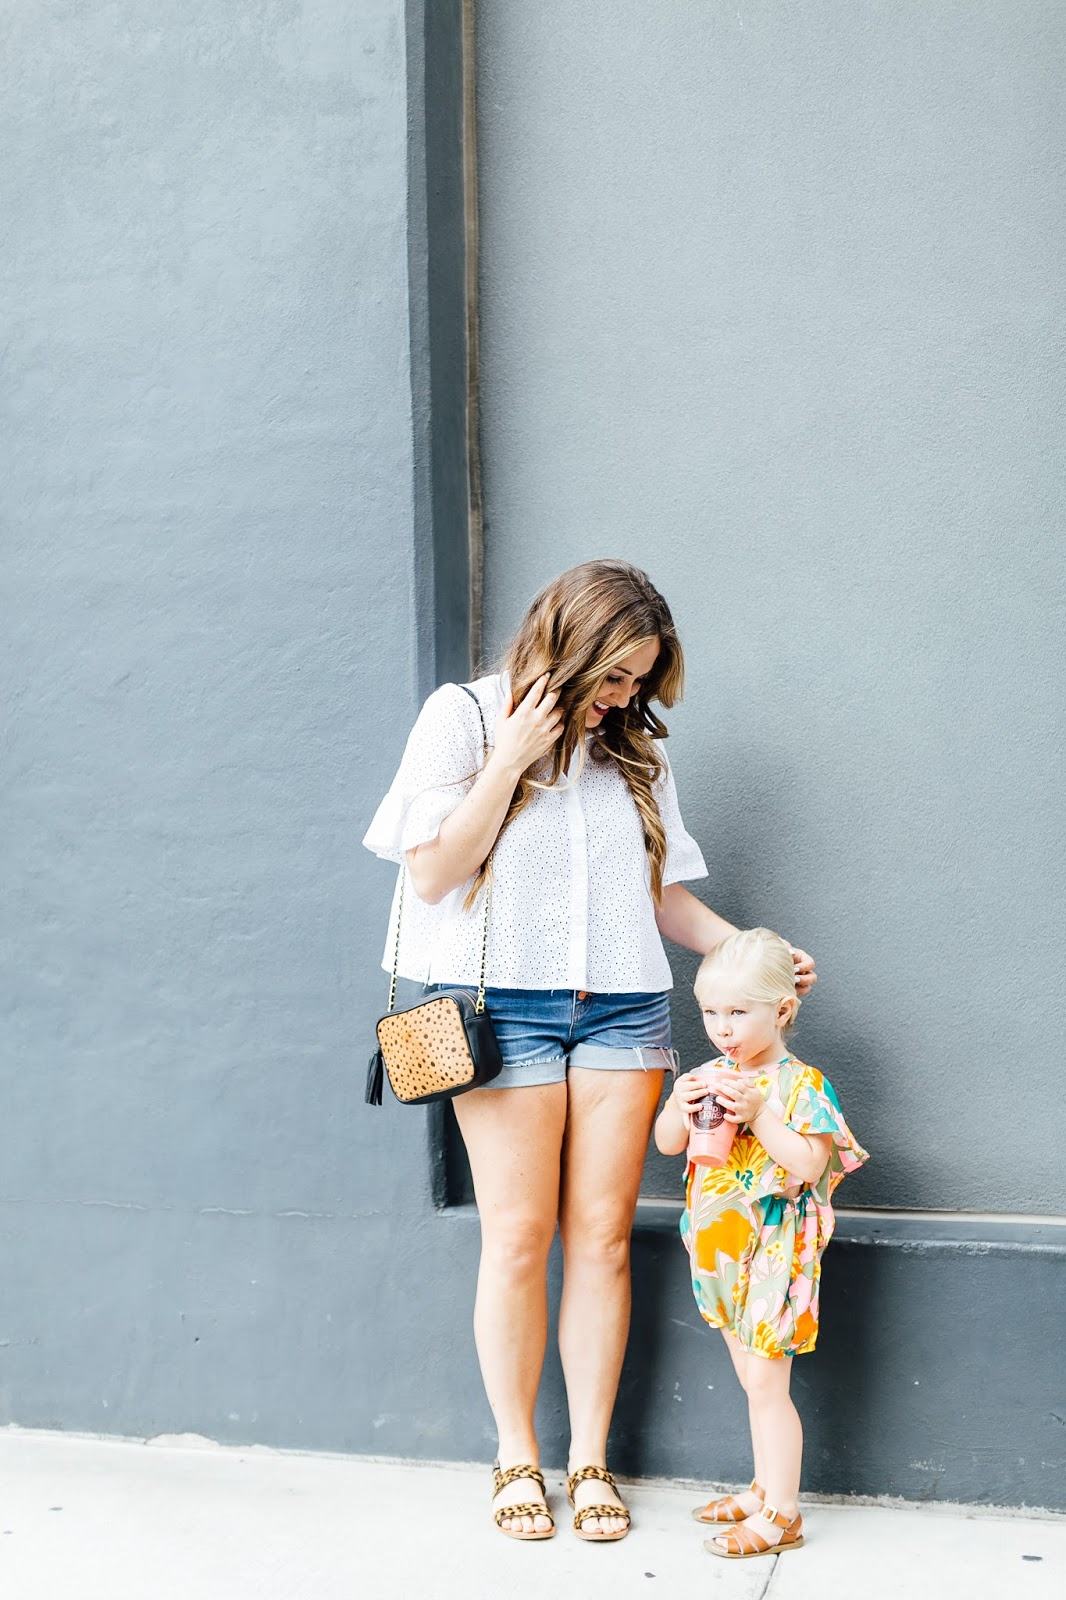 Mamas & Minis Collective - Living in Summer Rompers by fashion blogger Laura of Walking in Memphis in High Heels